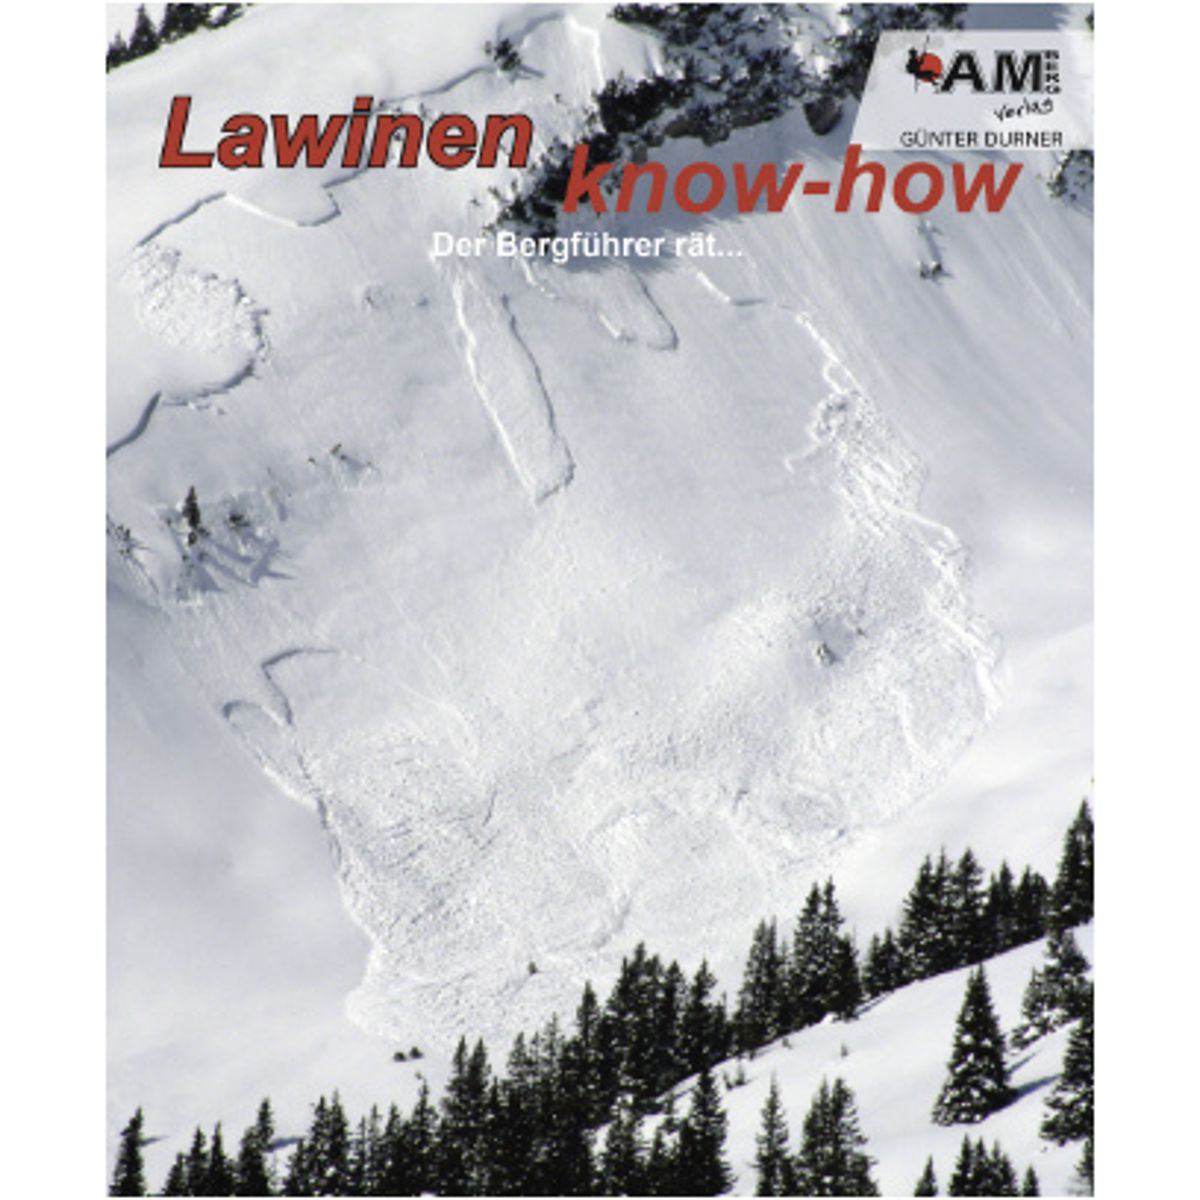 Image of AM-Berg Verlag Lawinen know-how